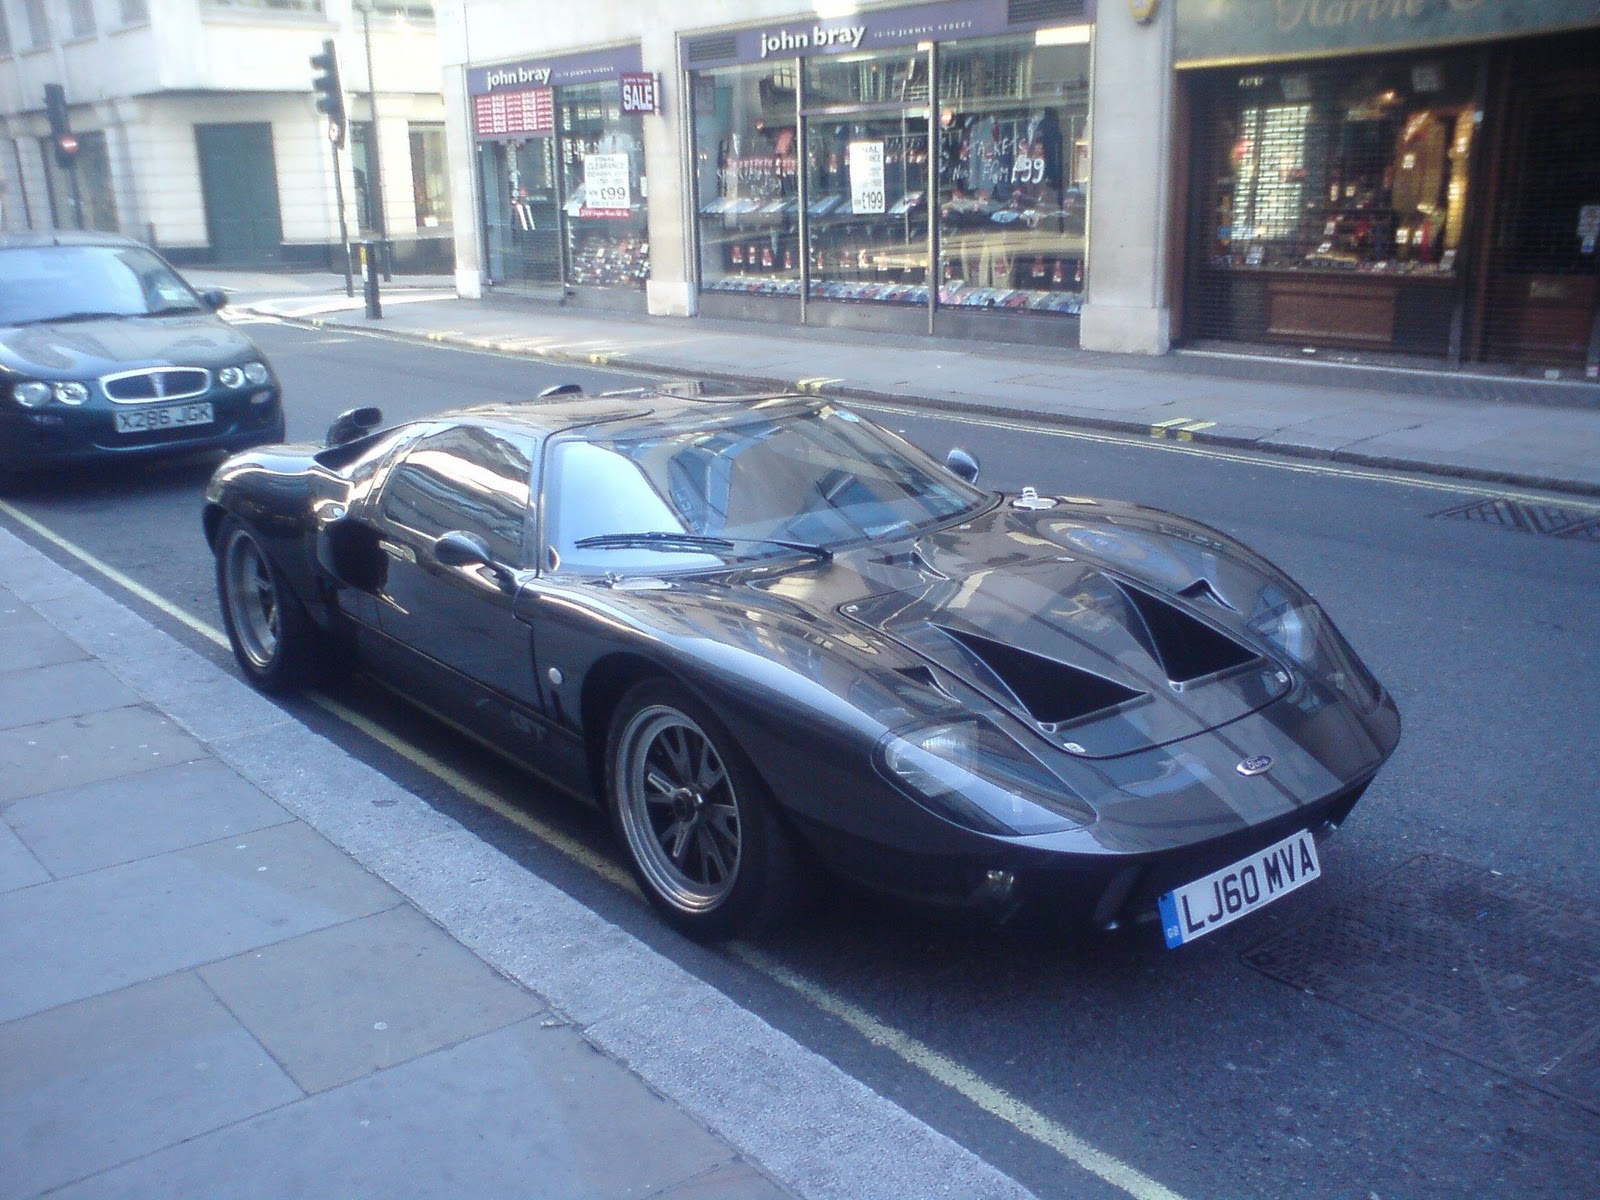 A Ford Gt On Jermyn Street On Autumn Sunday Morning Rain On The Roof At Galvin In Old Spitalfields Market The Famous Black Helicopter Flying Away From